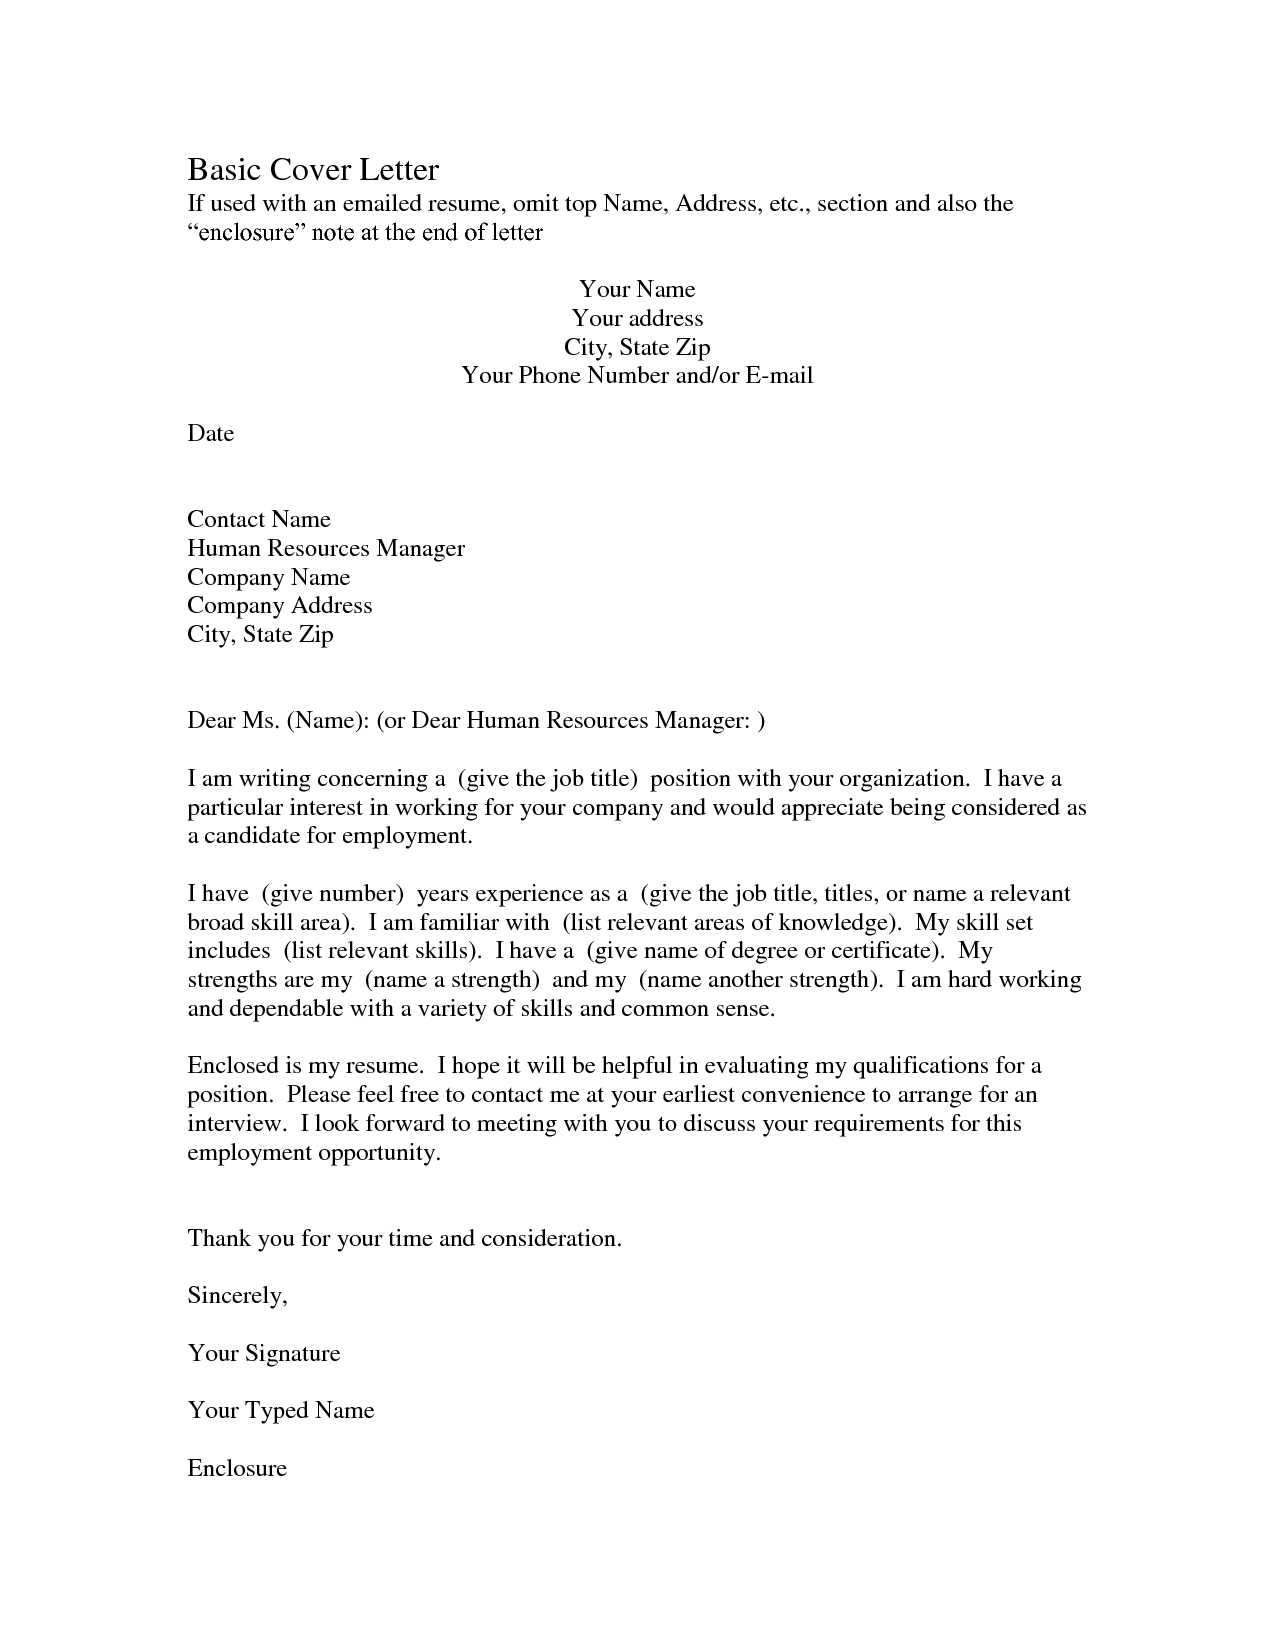 Cease and Desist Letter Non Compete Template - This Cover Letter Sample Shows How A Resumes for Teachers Can Help